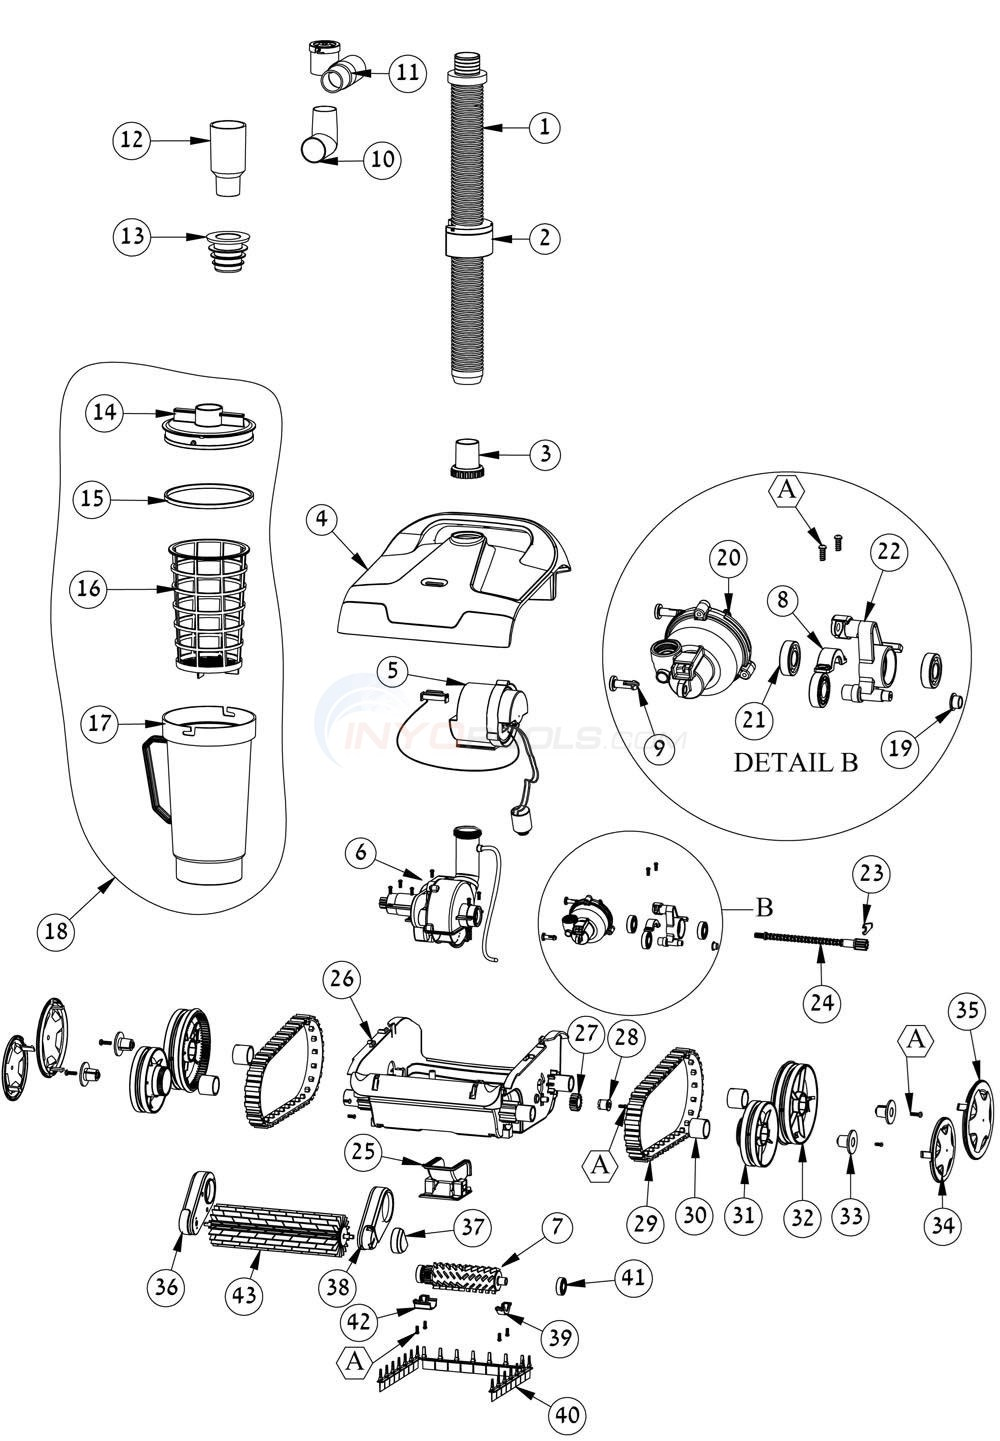 Maytronics Dolphin Hybrid DX2 Parts Diagram